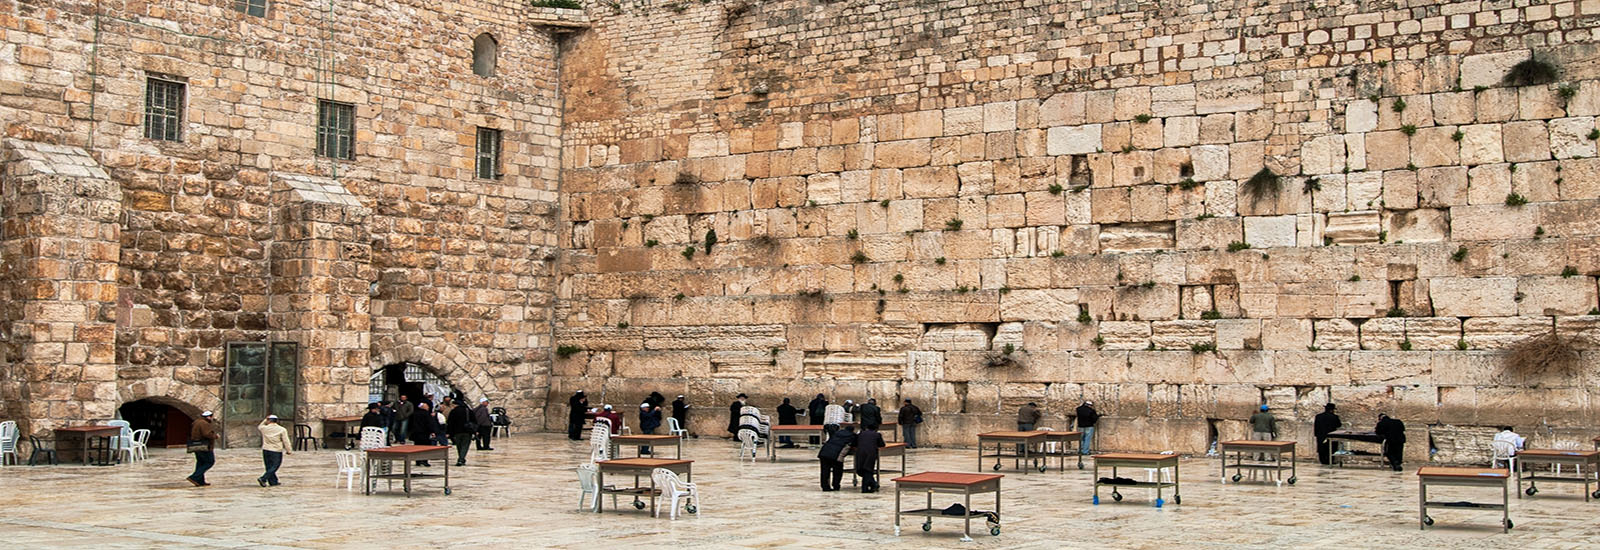 This is a stock photo. The Western Wall in Jerusalem.